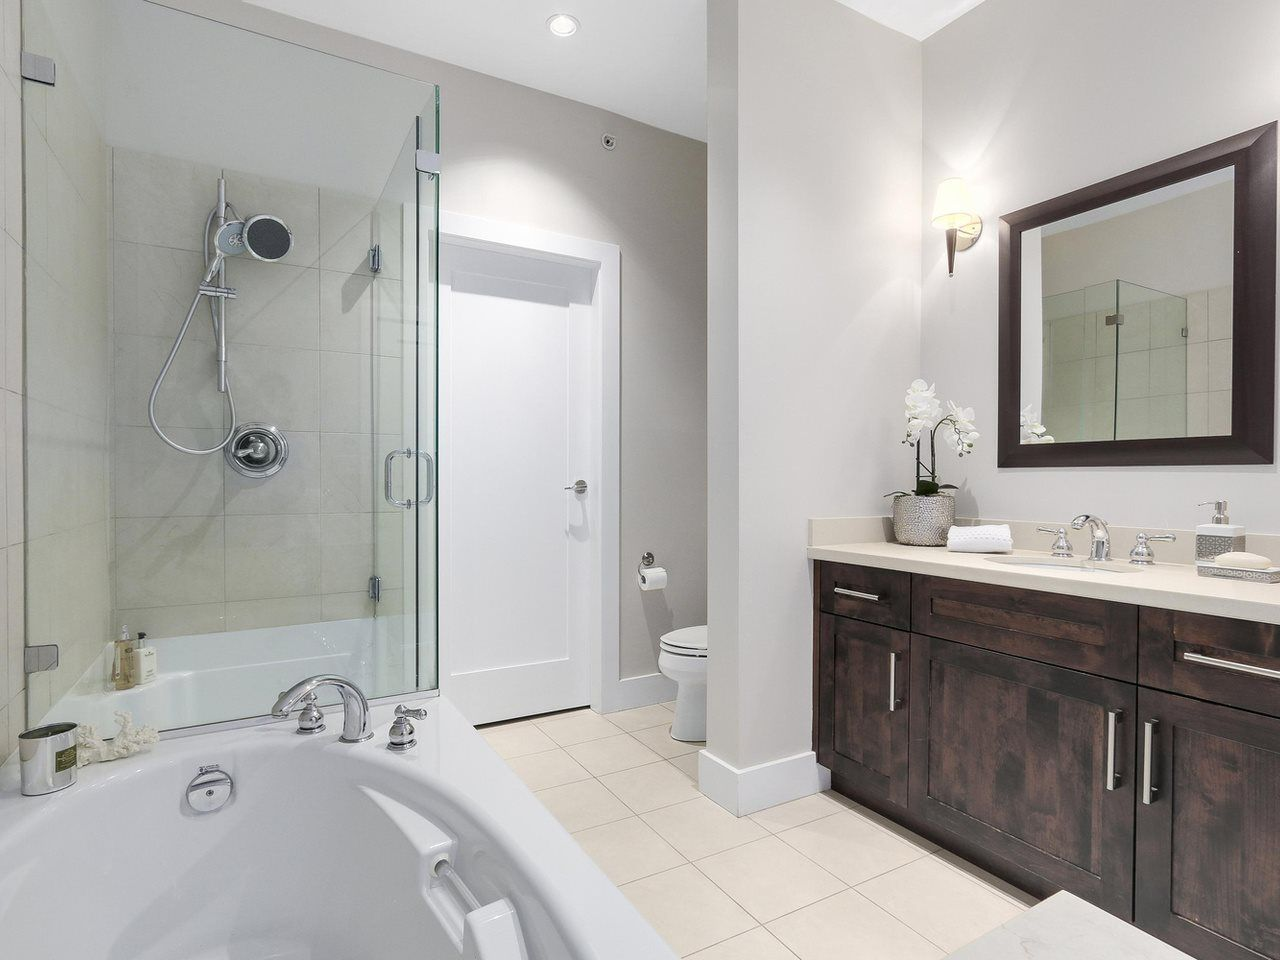 """Photo 19: Photos: 404 6328 LARKIN Drive in Vancouver: University VW Condo for sale in """"Journey"""" (Vancouver West)  : MLS®# R2146632"""